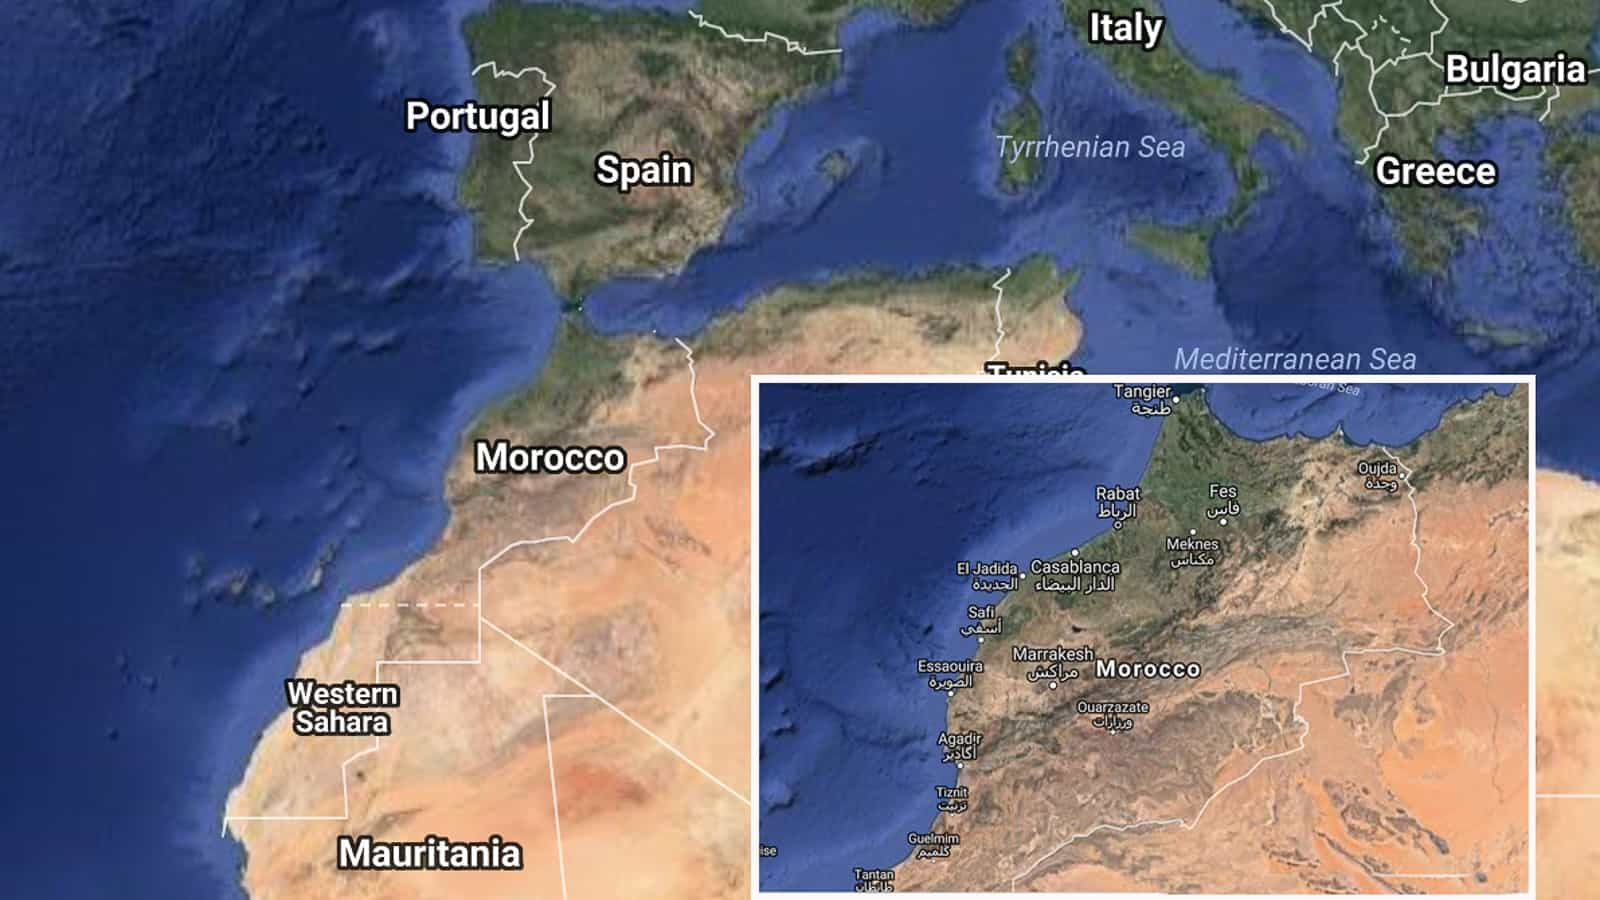 Campervan travel in Morocco - map of Morocco